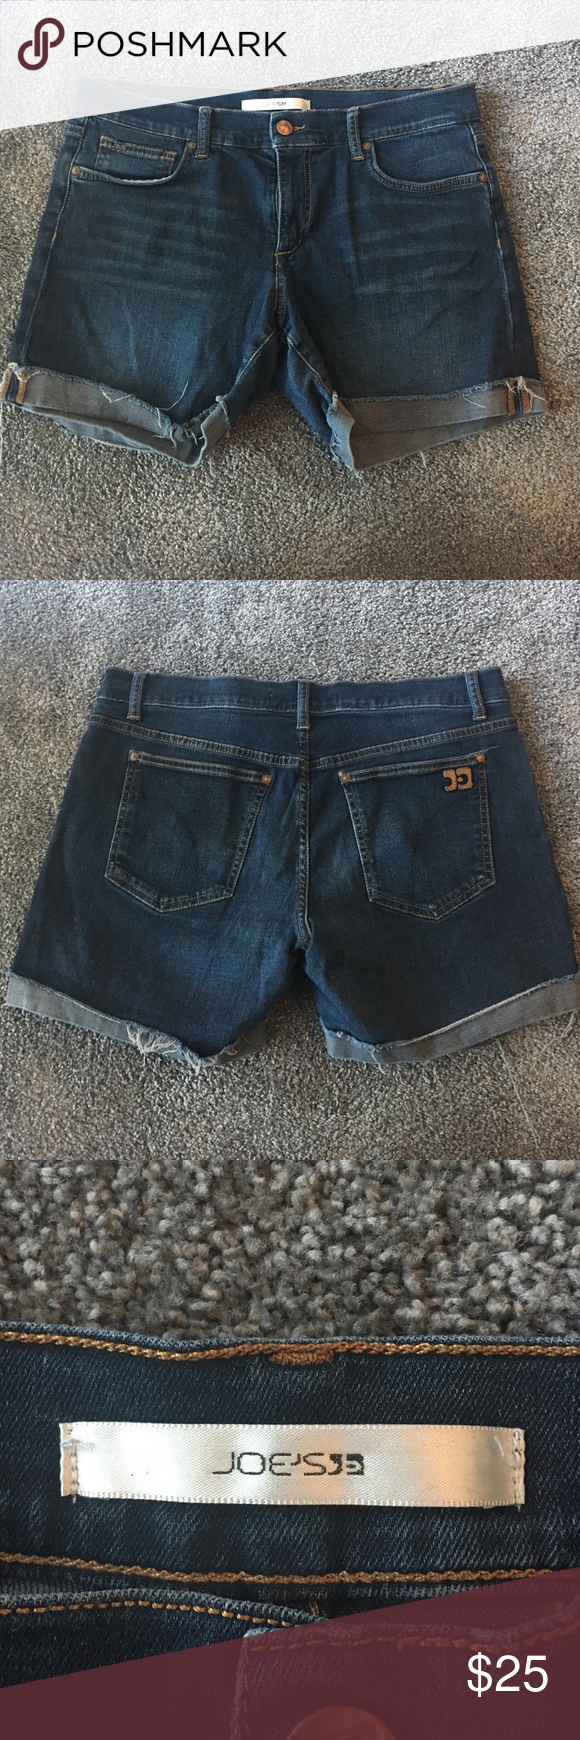 Joe Jeans shorts Jean shorts by Joe Jeans Joe's Jeans Shorts Jean Shorts